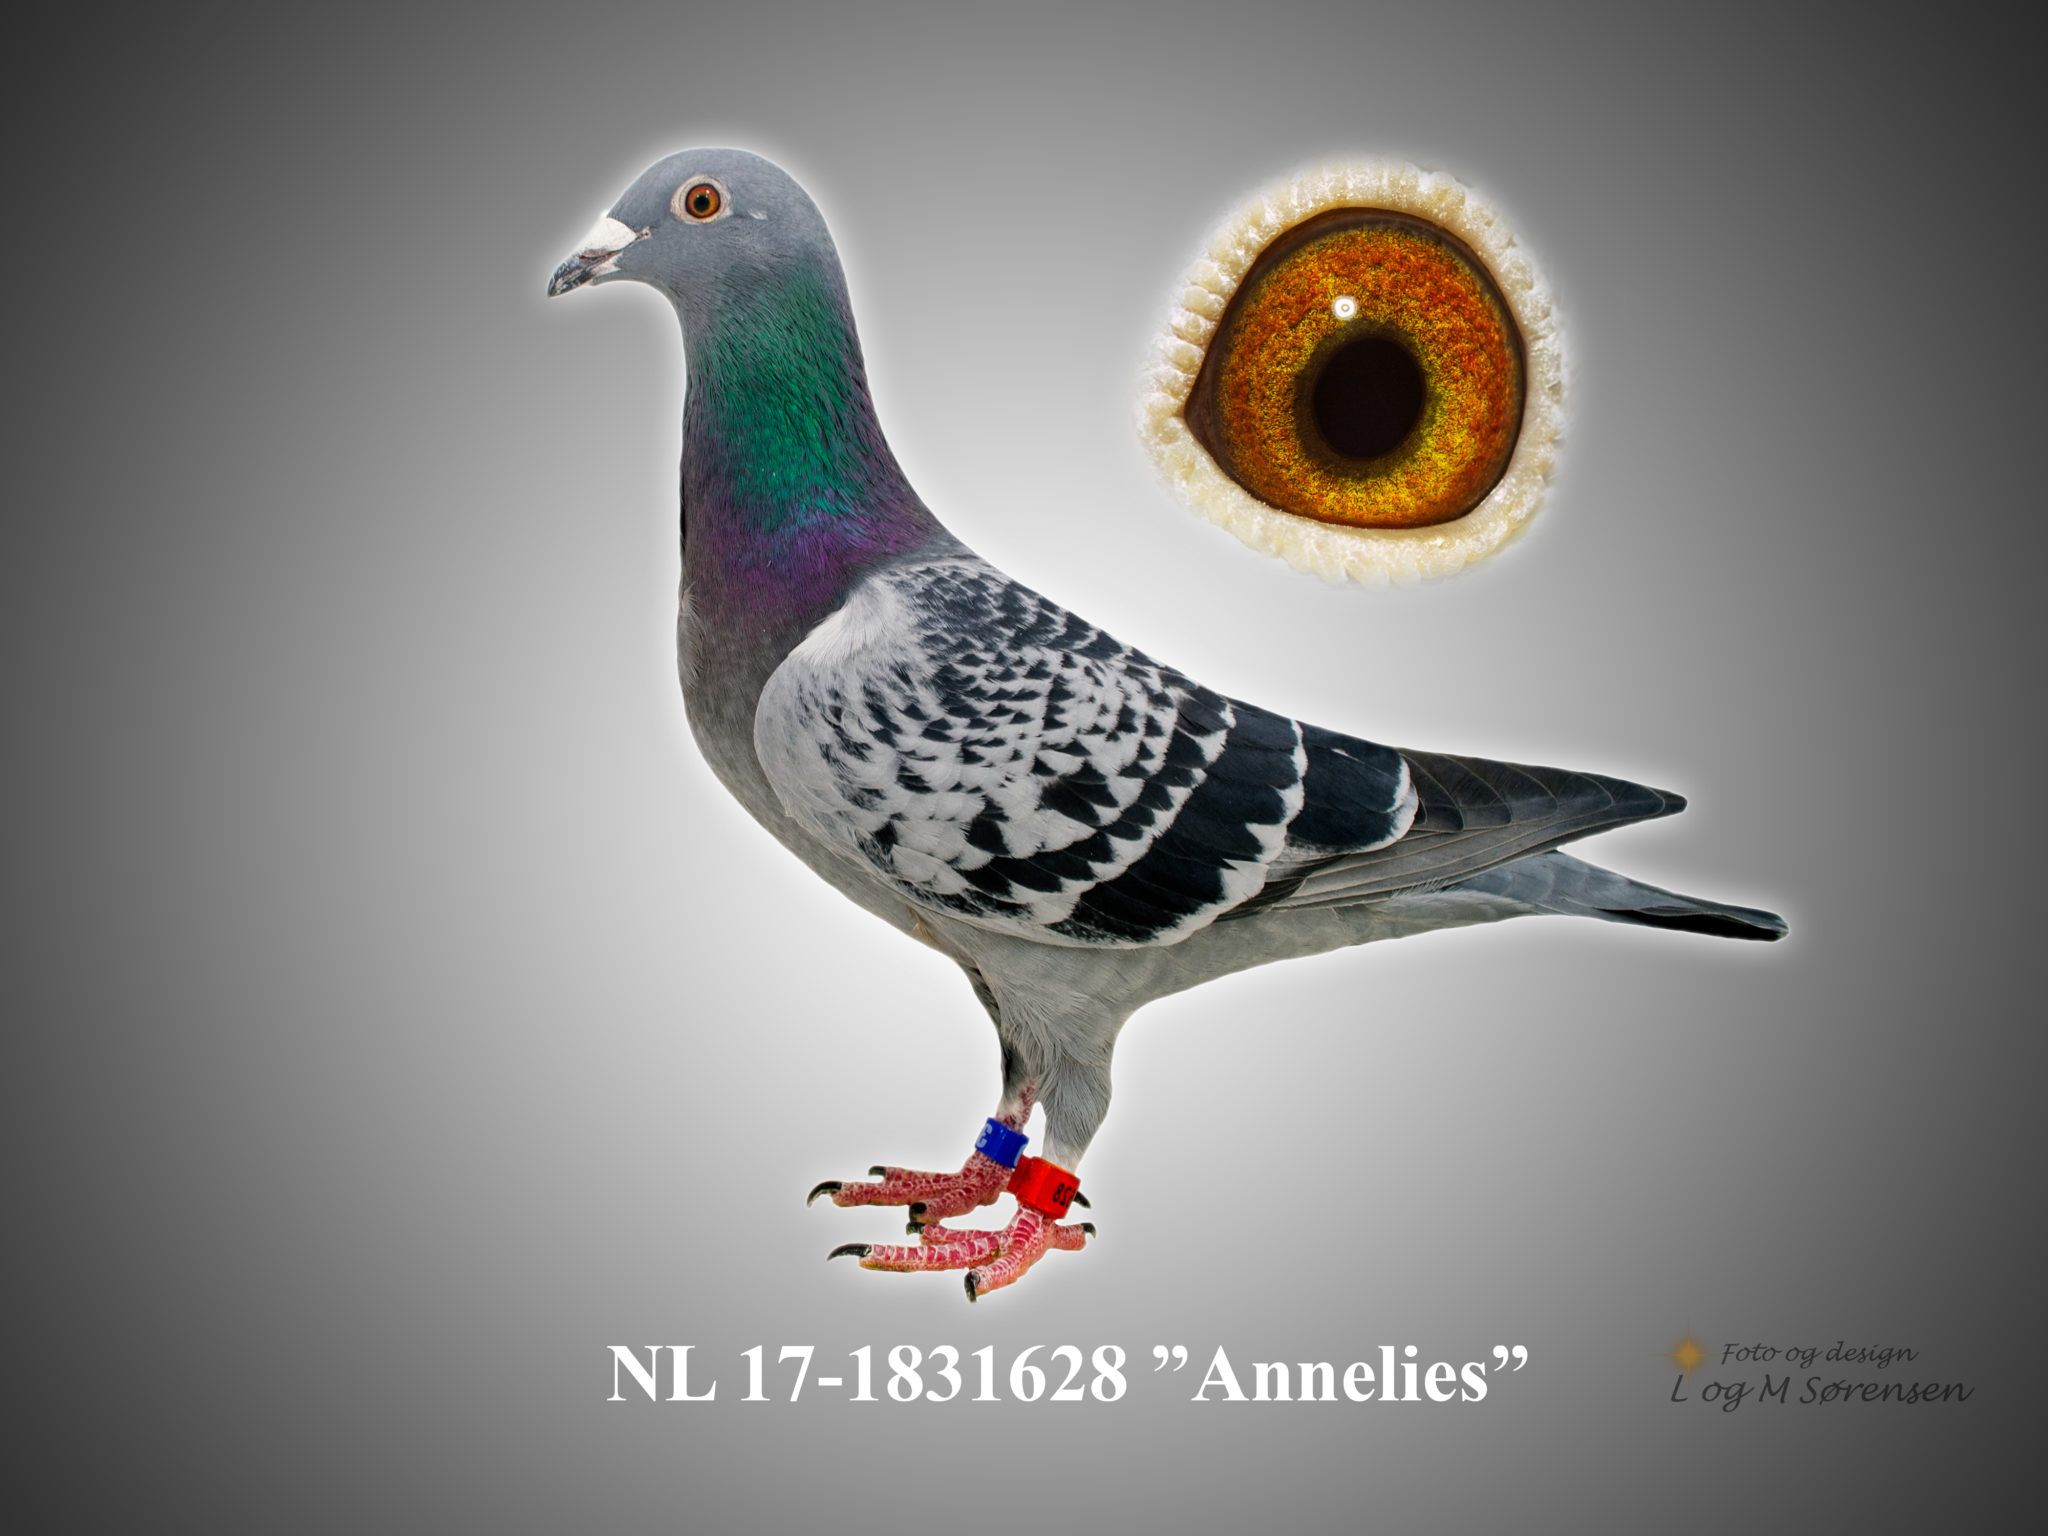 "Rede 21 NL 17-1831628 ""Annelies"""